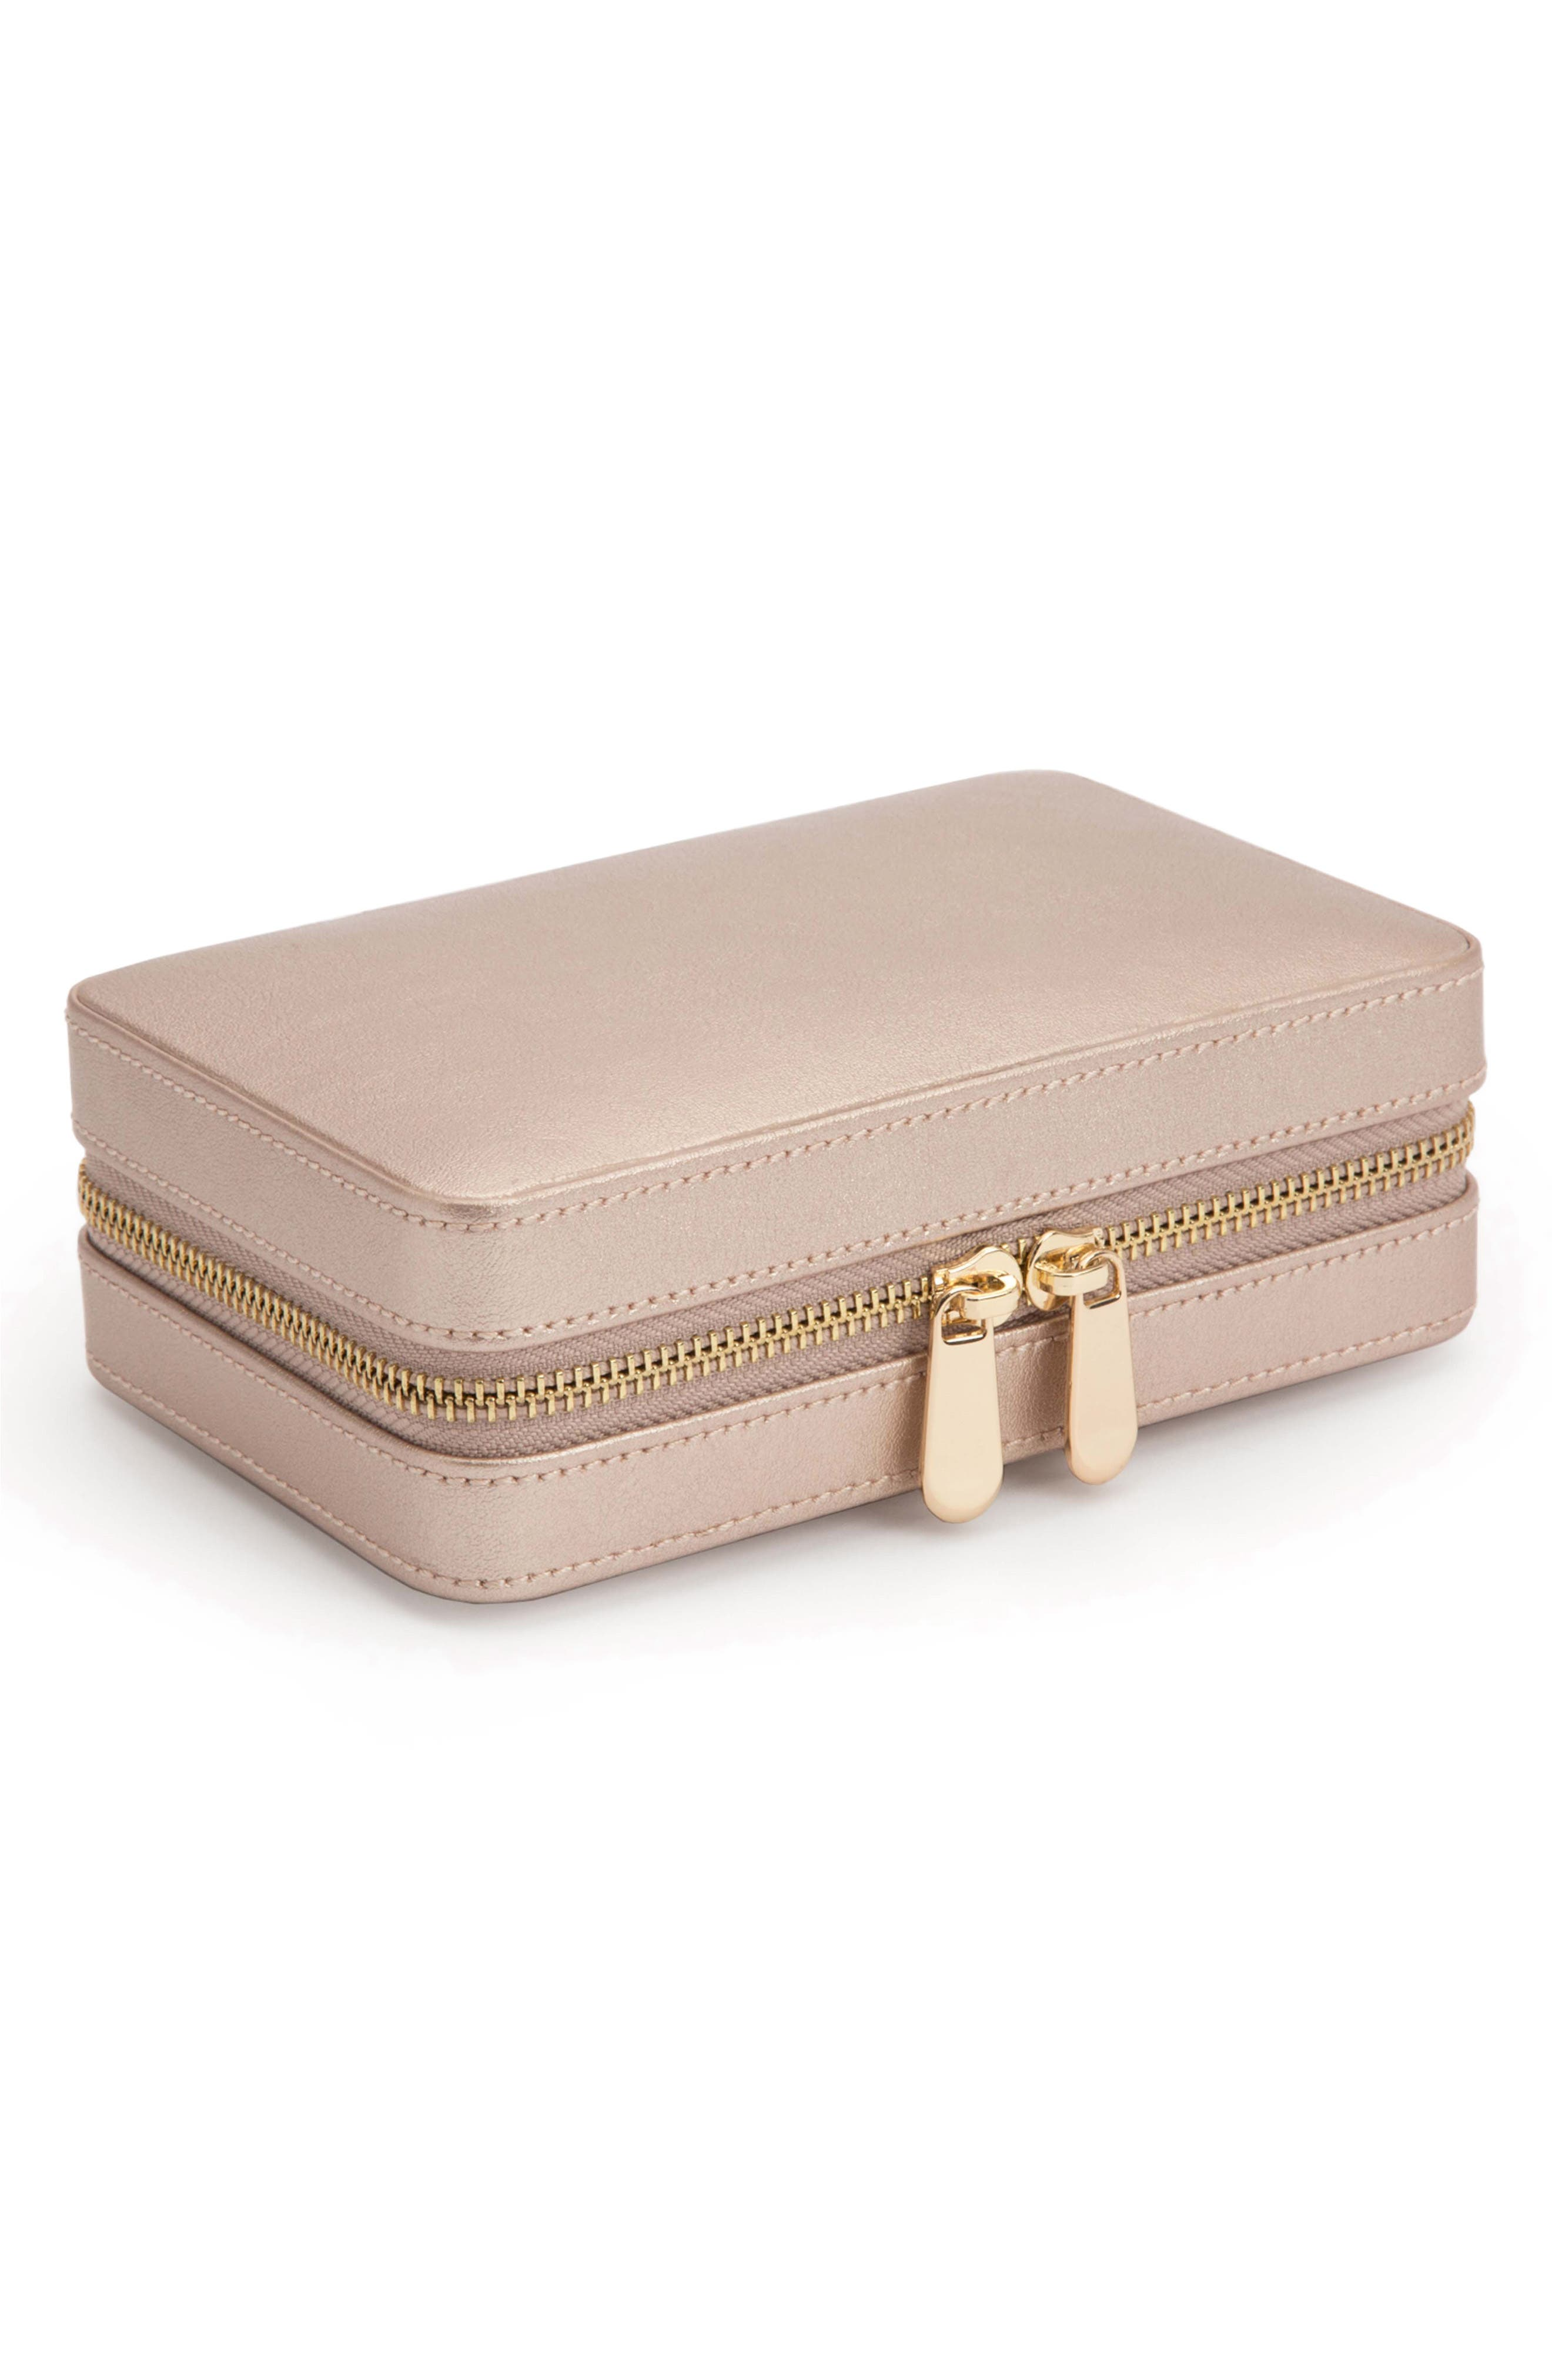 Palermo Zip Jewelry Case,                             Alternate thumbnail 4, color,                             ROSE GOLD